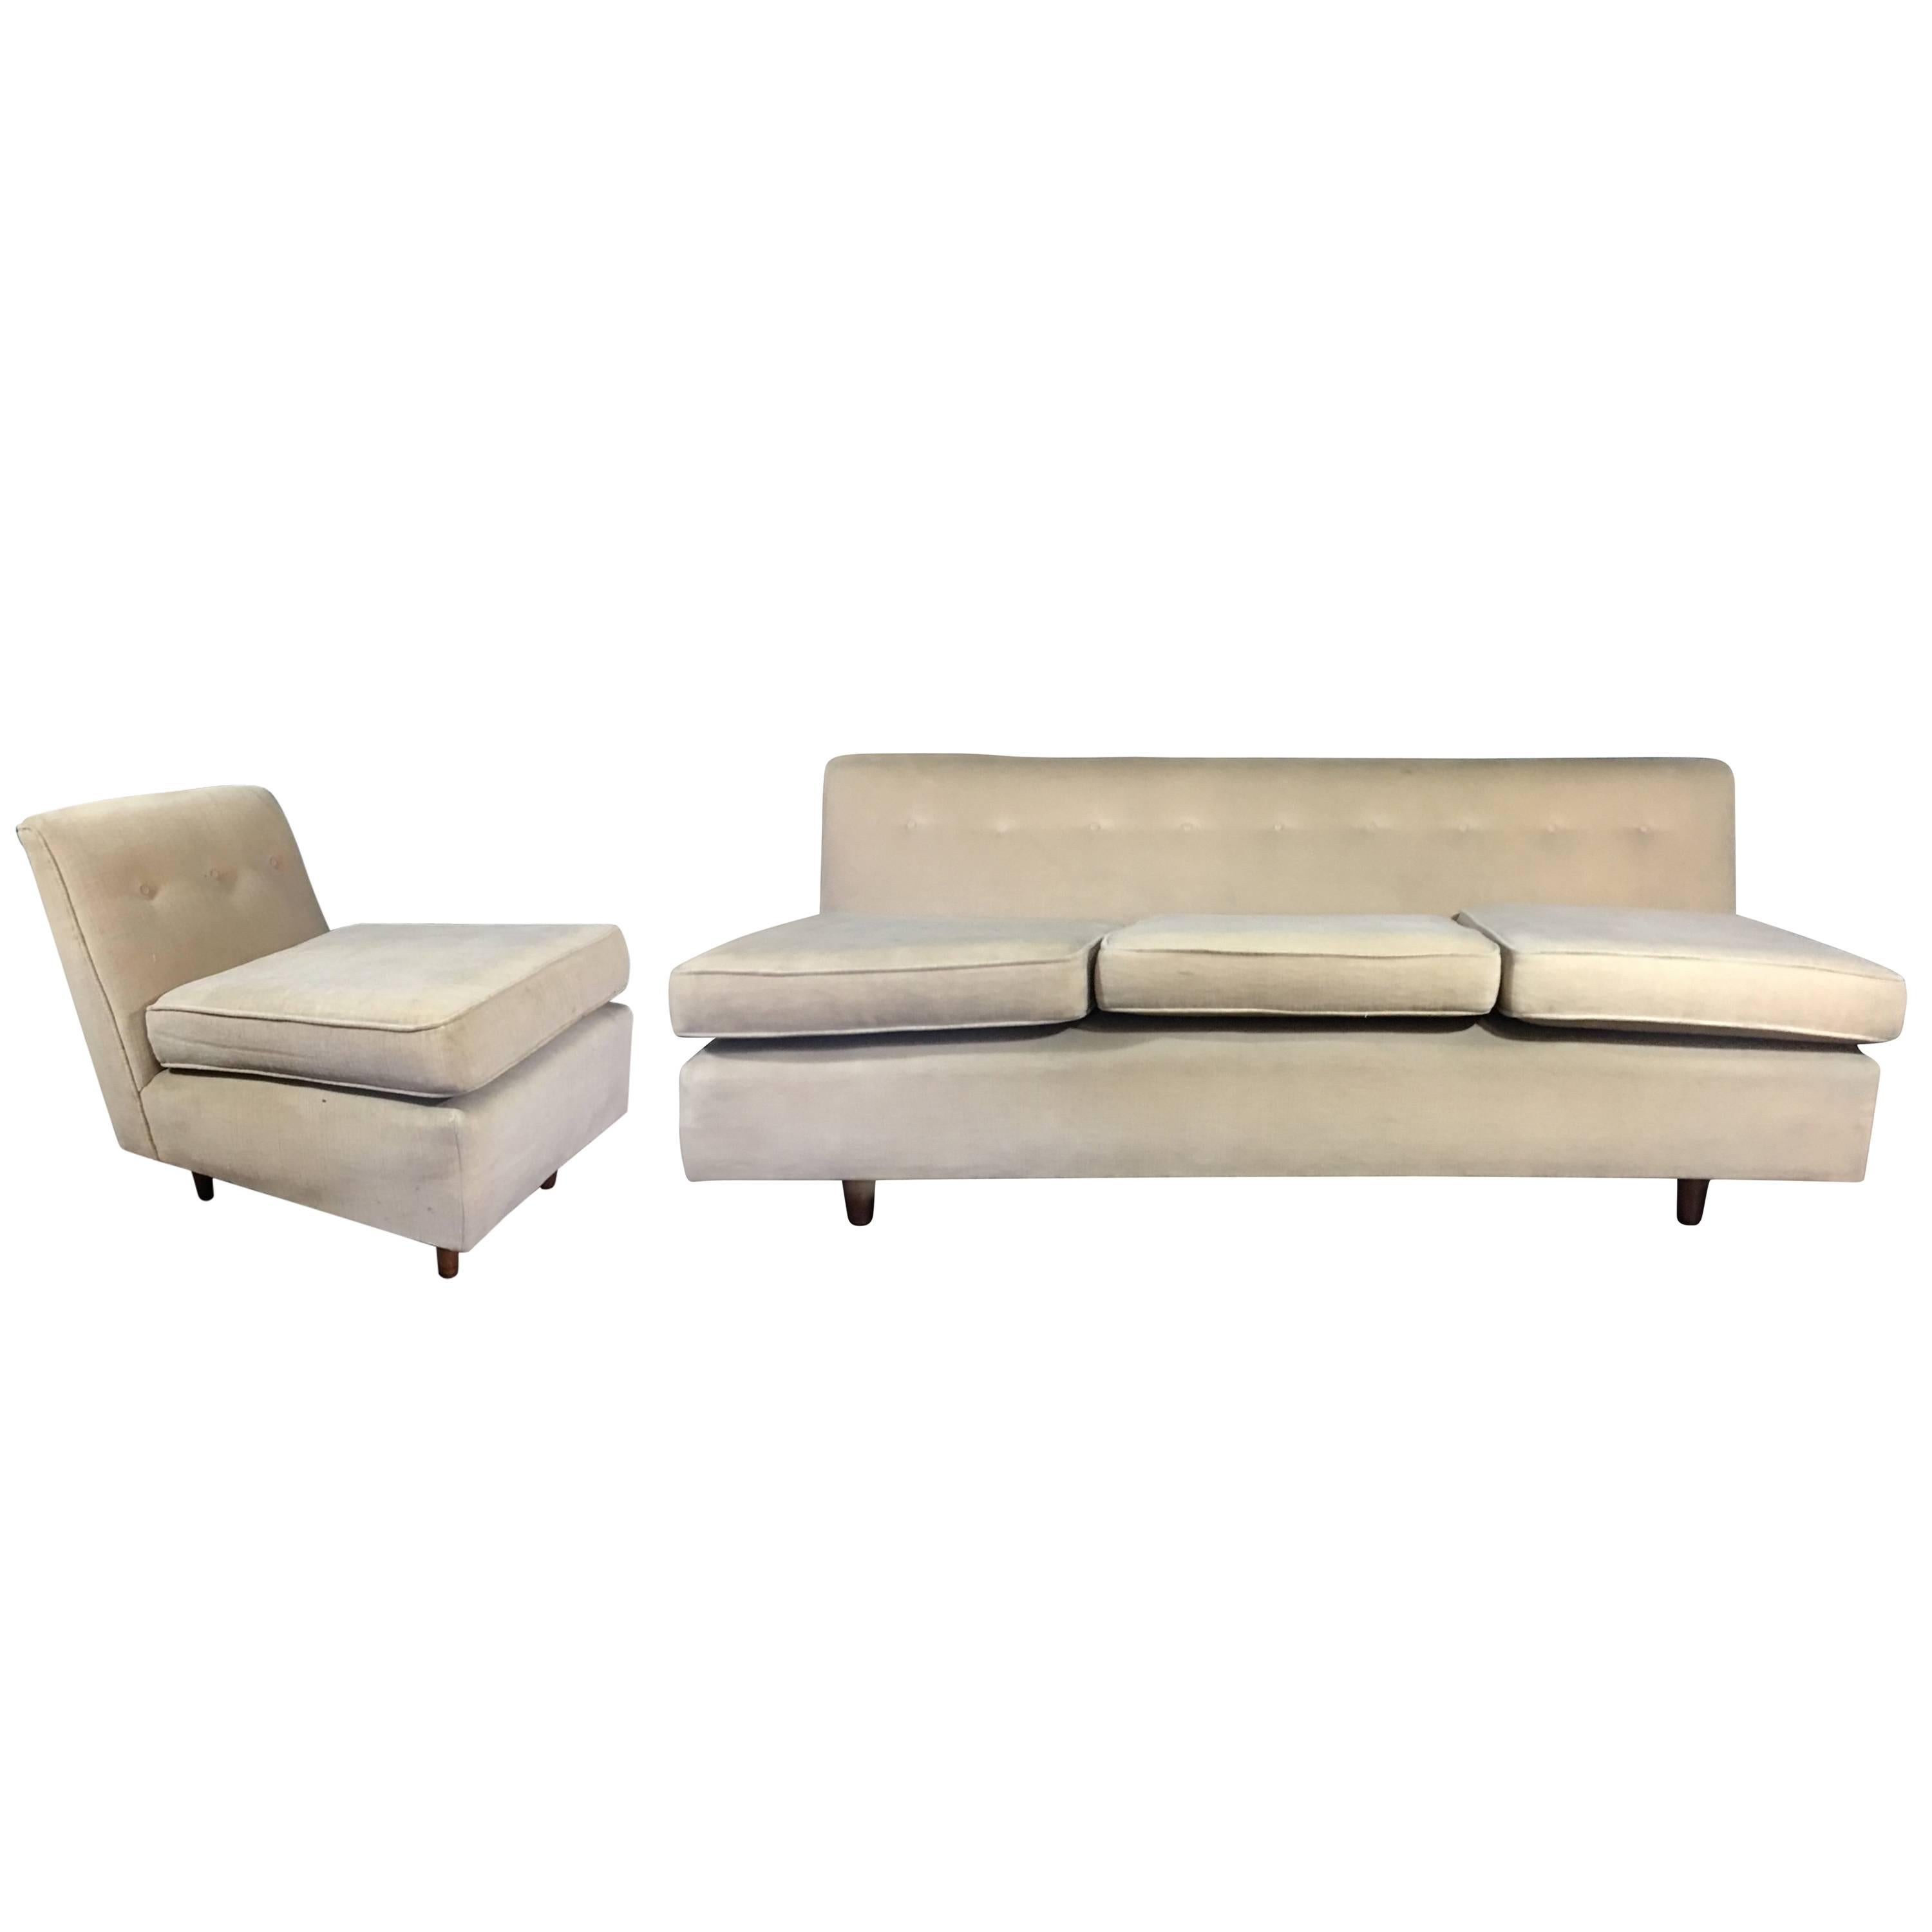 vintage midcentury armless sofa and partner chair